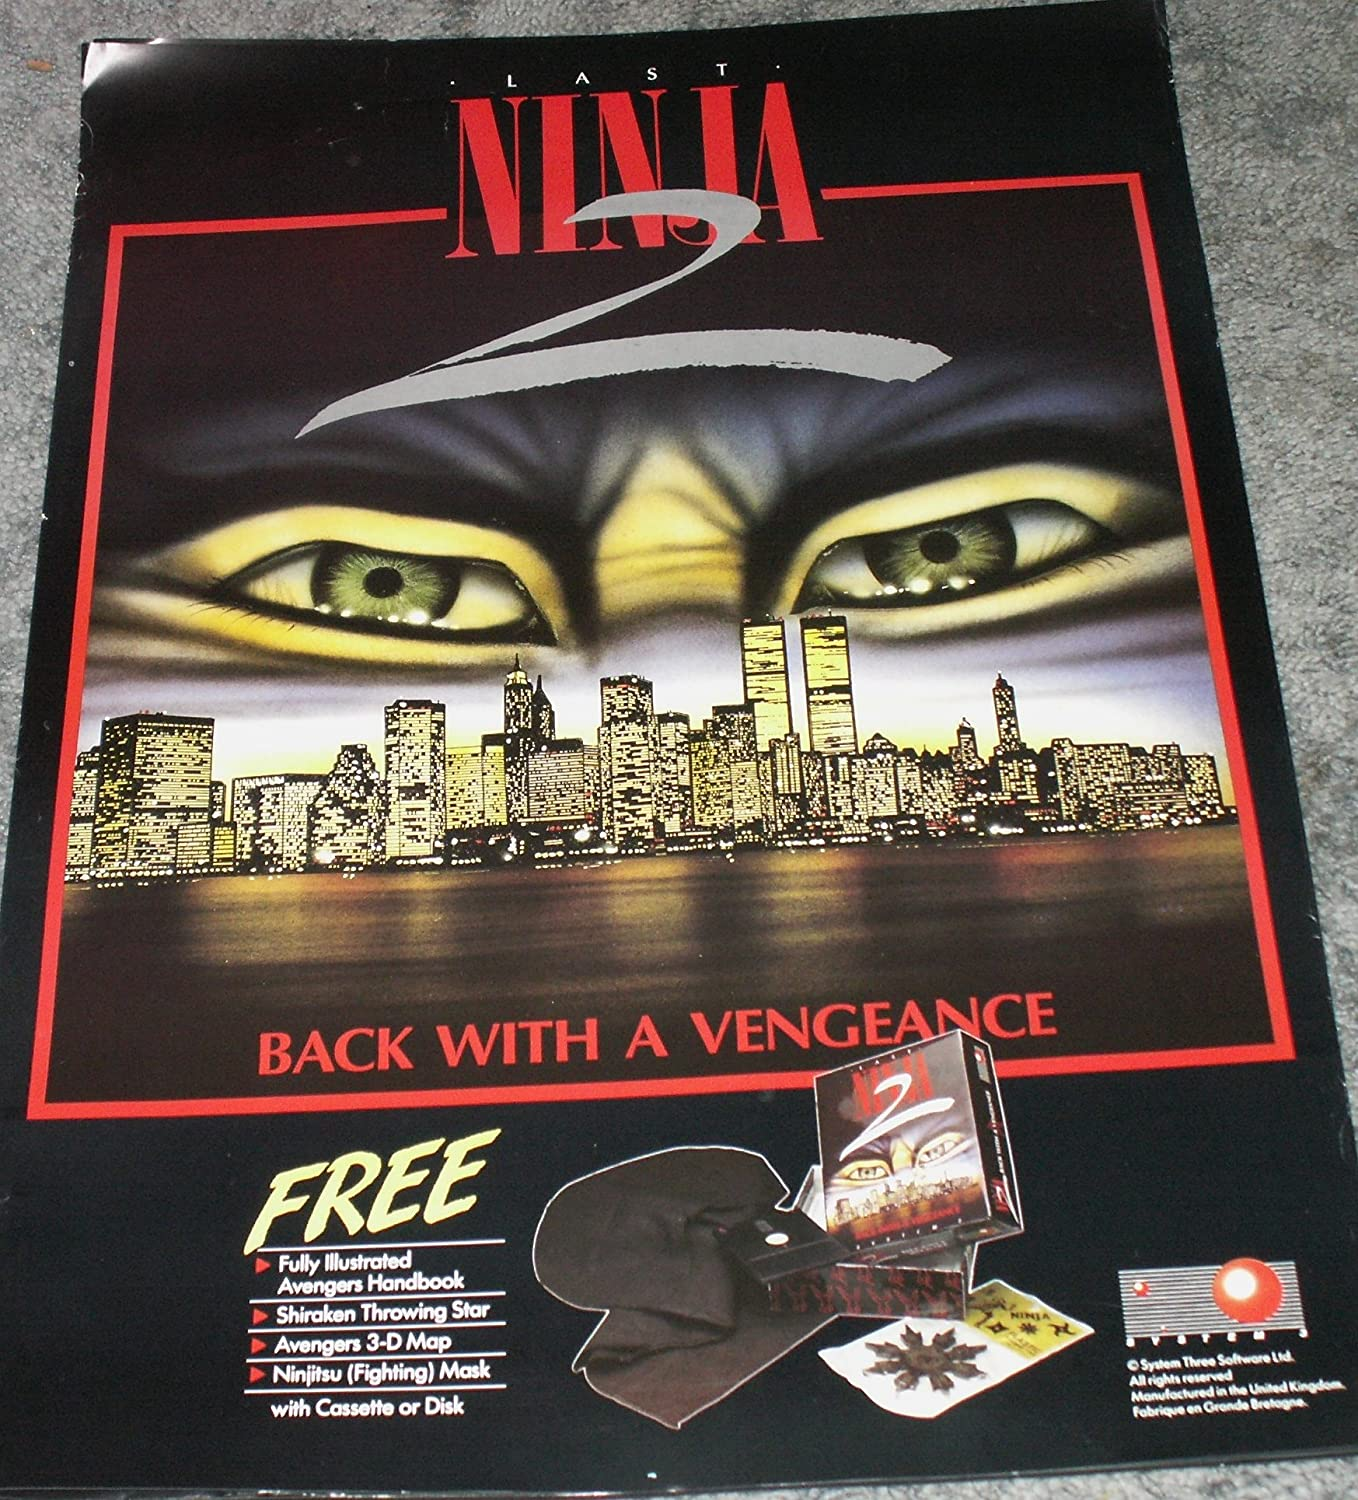 Amazon.com: 1988 The Last Ninja 2 Vintage Computer Game ...